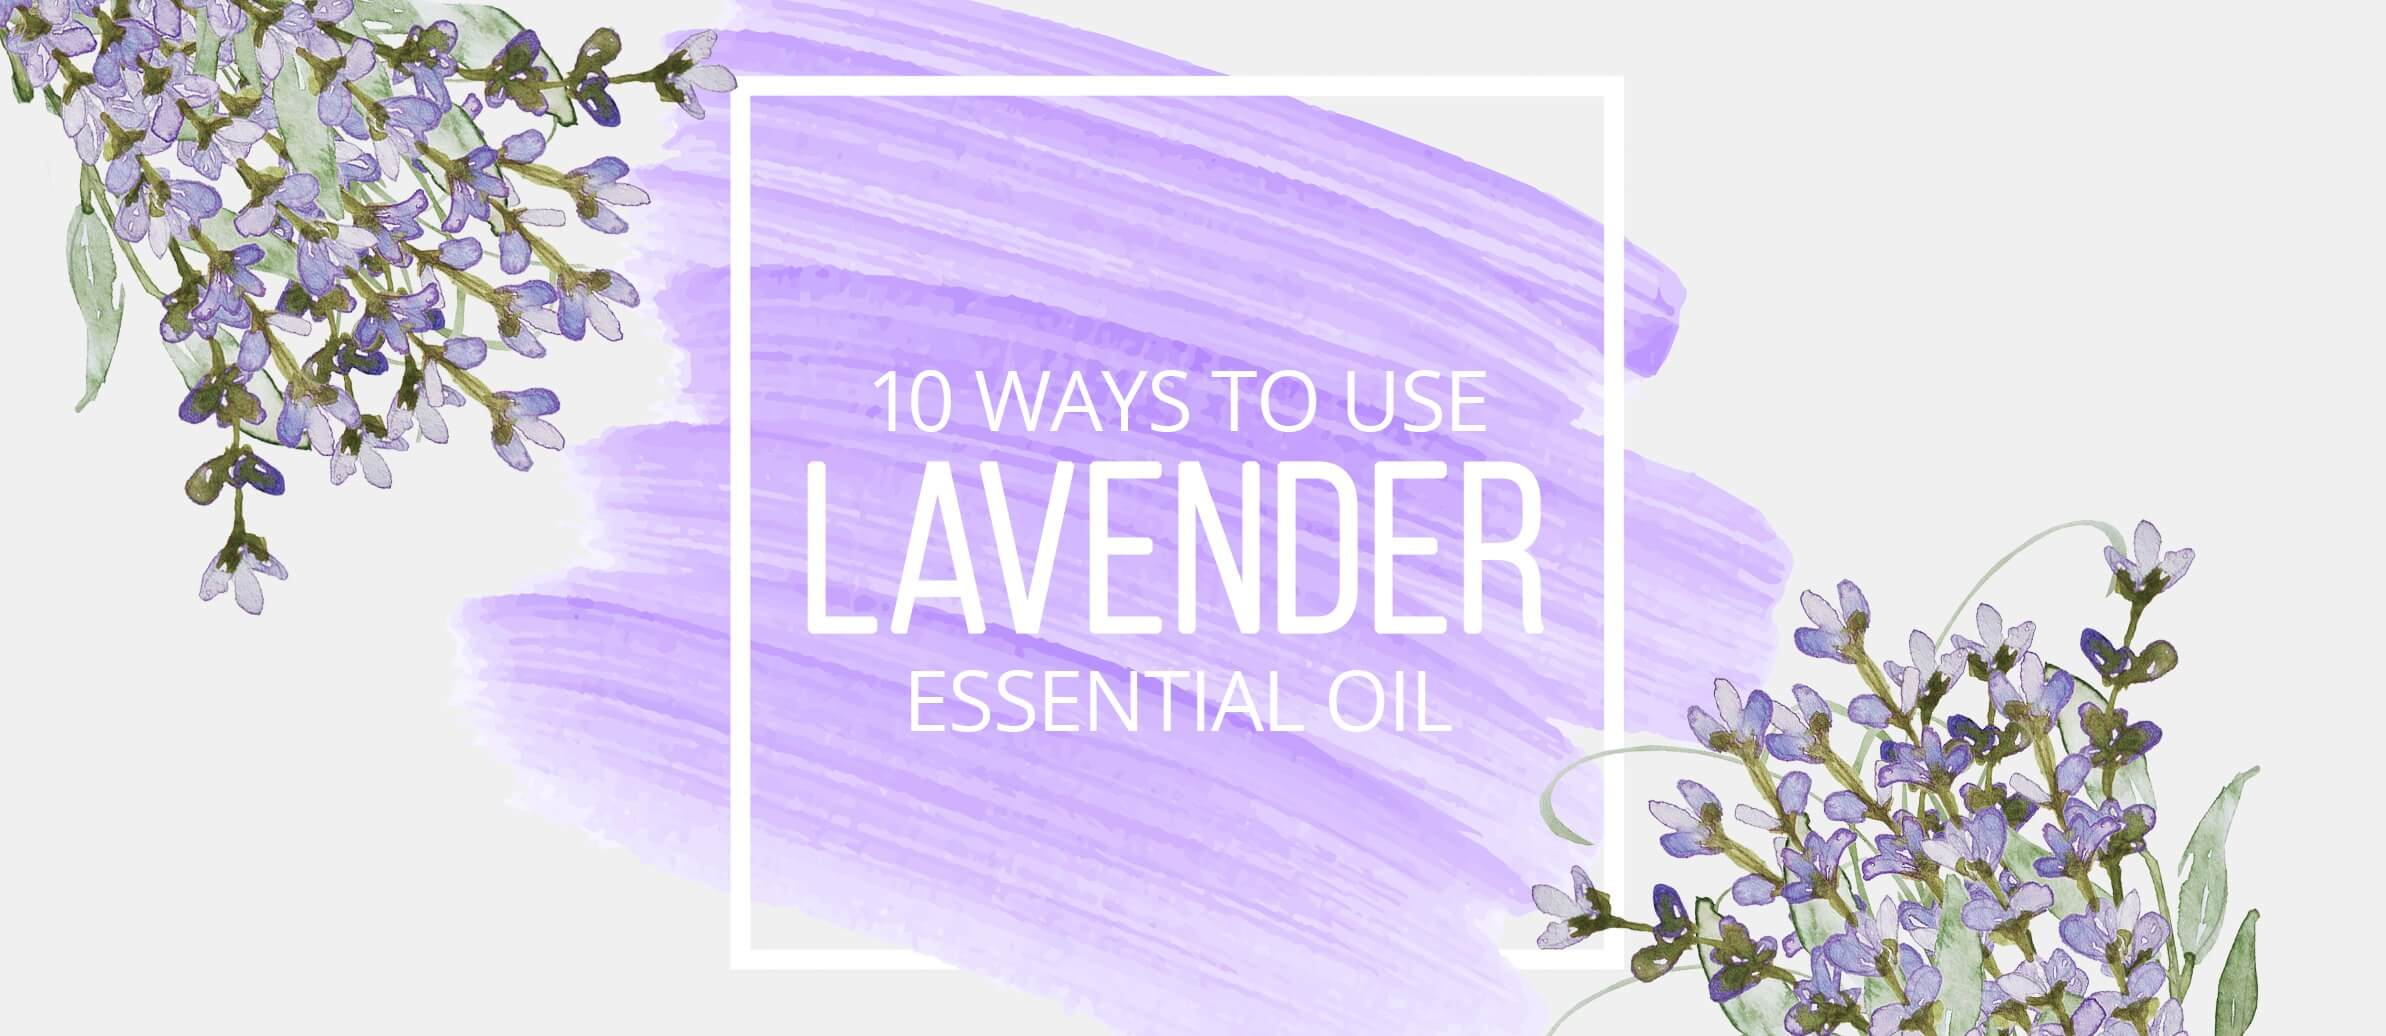 Top Ten Uses for Lavender Essential Oil You May Not Think Of